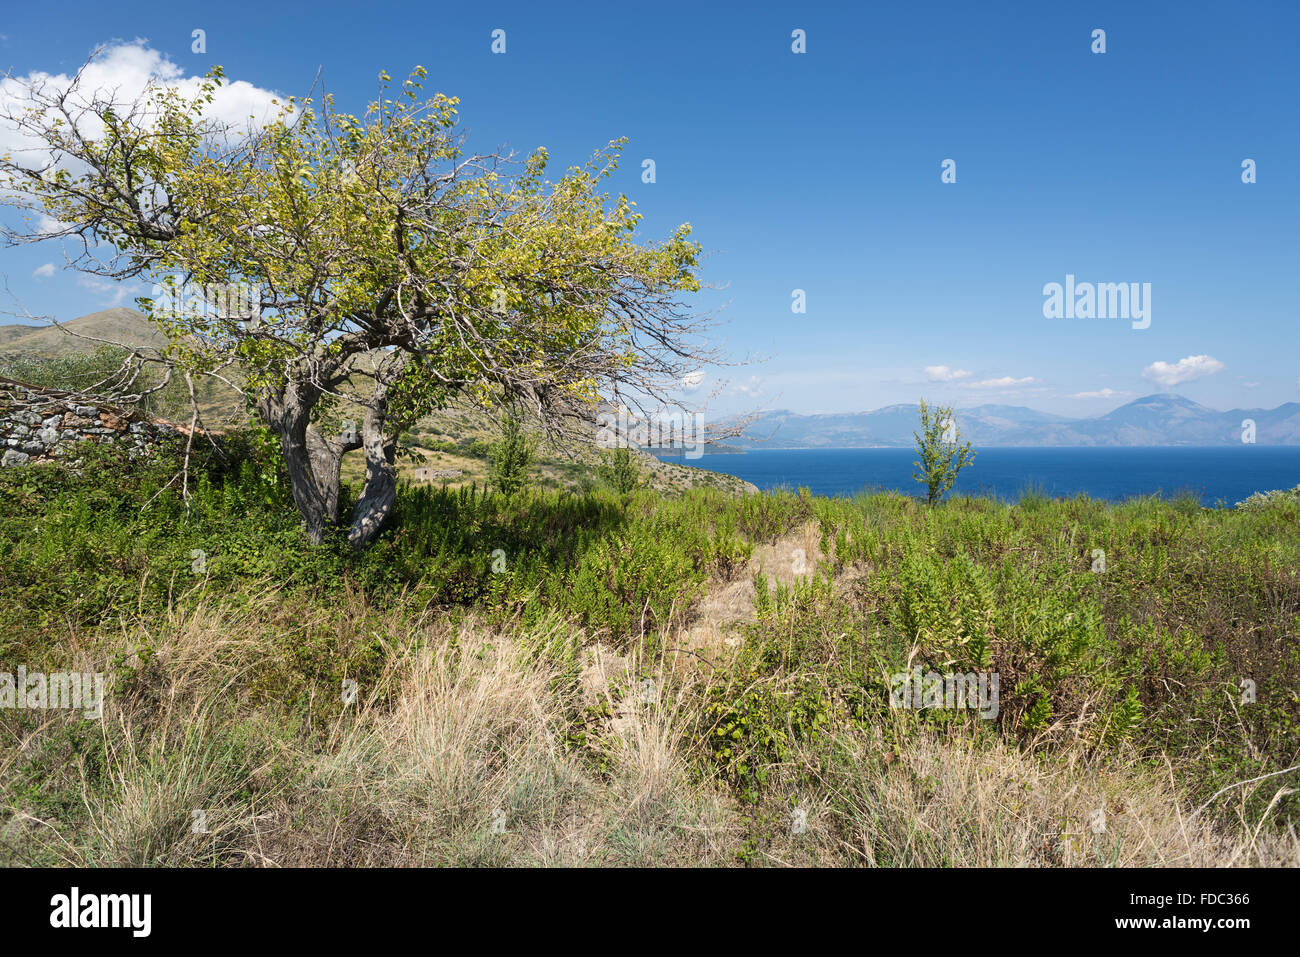 Olive tree on the Masseta coastline overlooking the sea and mountains in the Gulf of Policastro, Cilento, Campania, - Stock Image